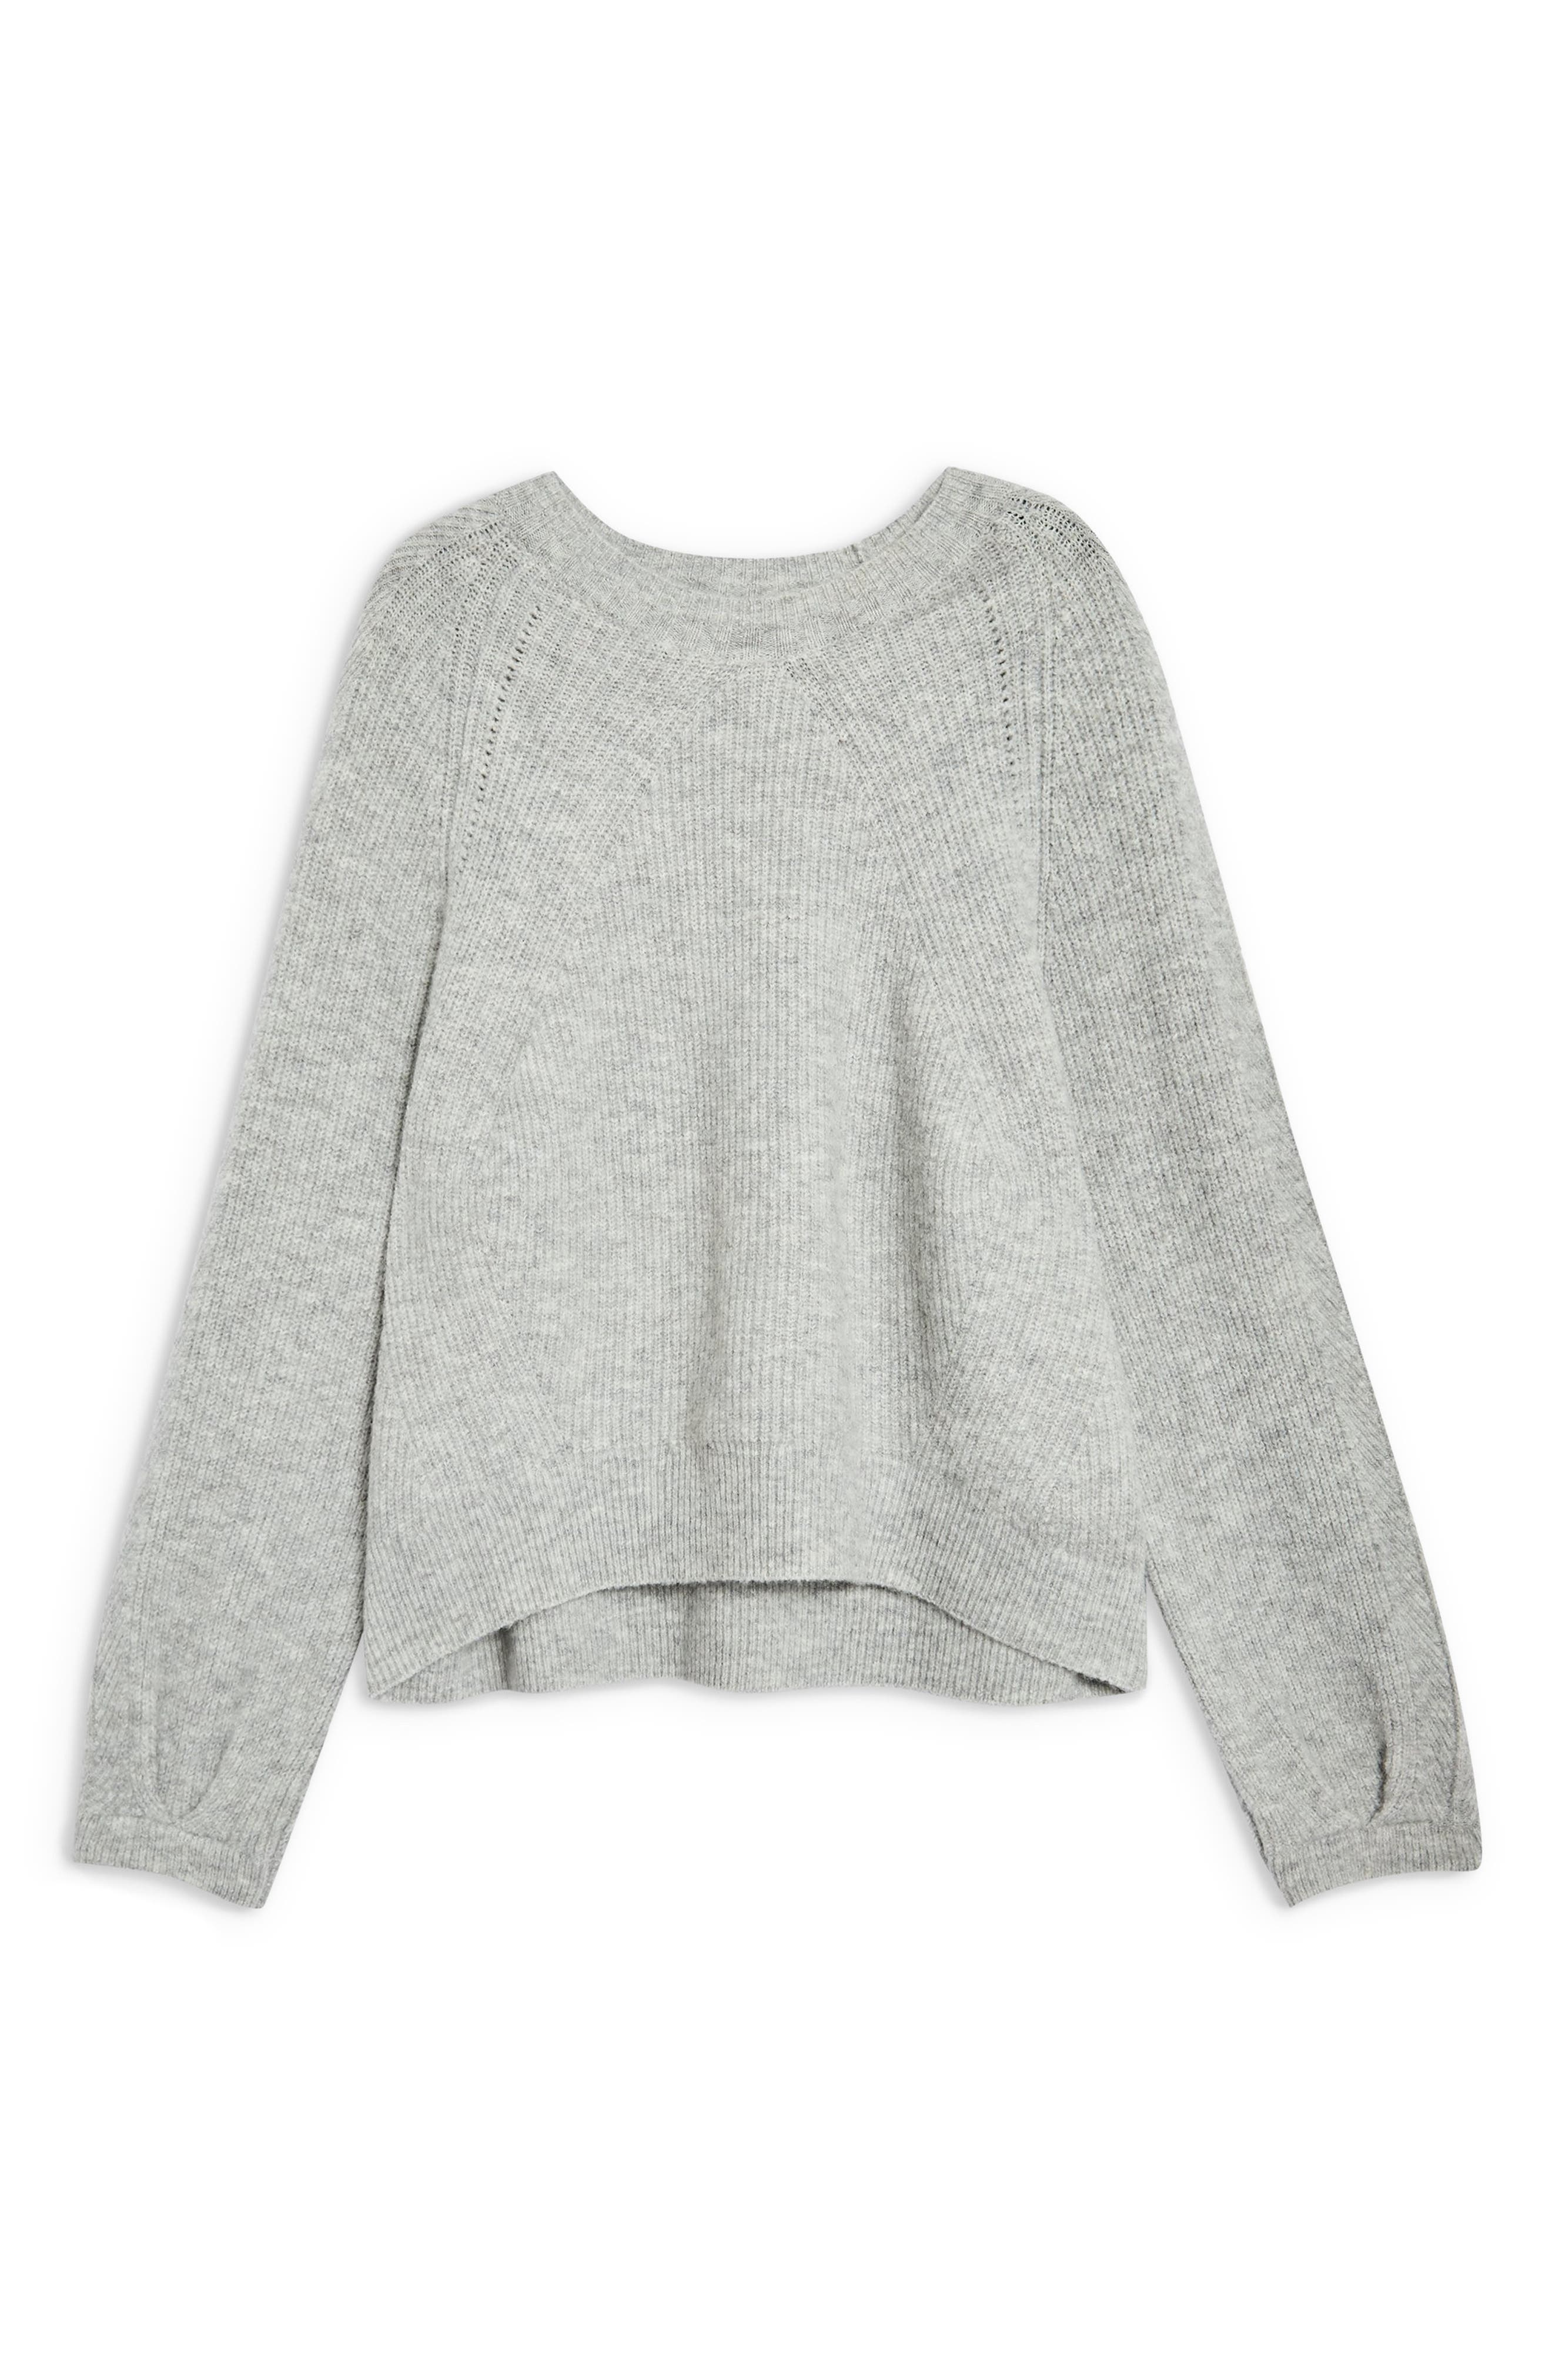 Ribbed Crewneck Sweater,                             Alternate thumbnail 3, color,                             GREY MARL